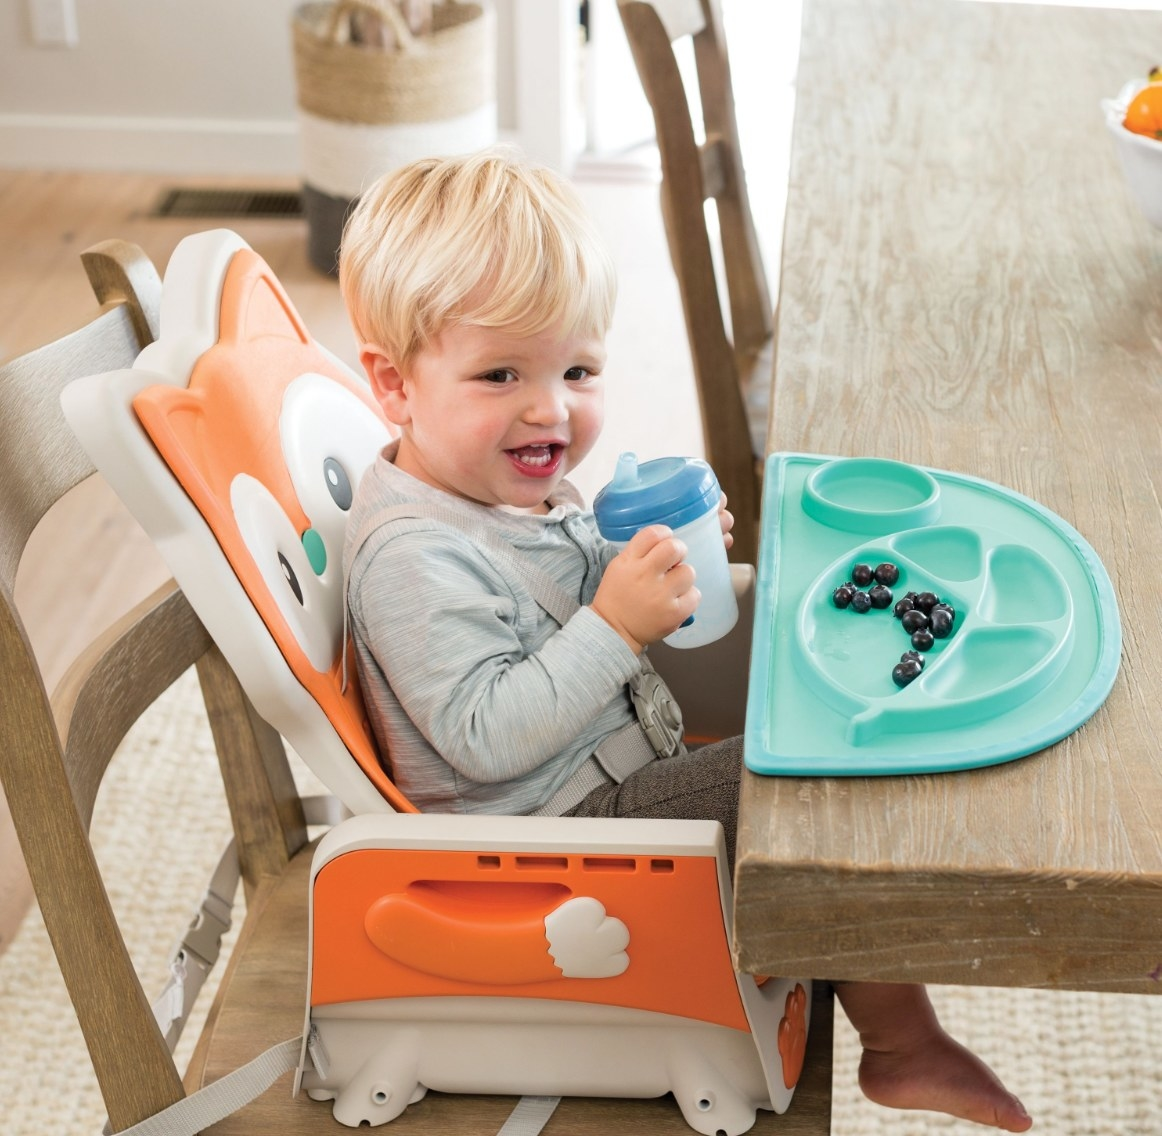 The fox 4-in-1 high chair